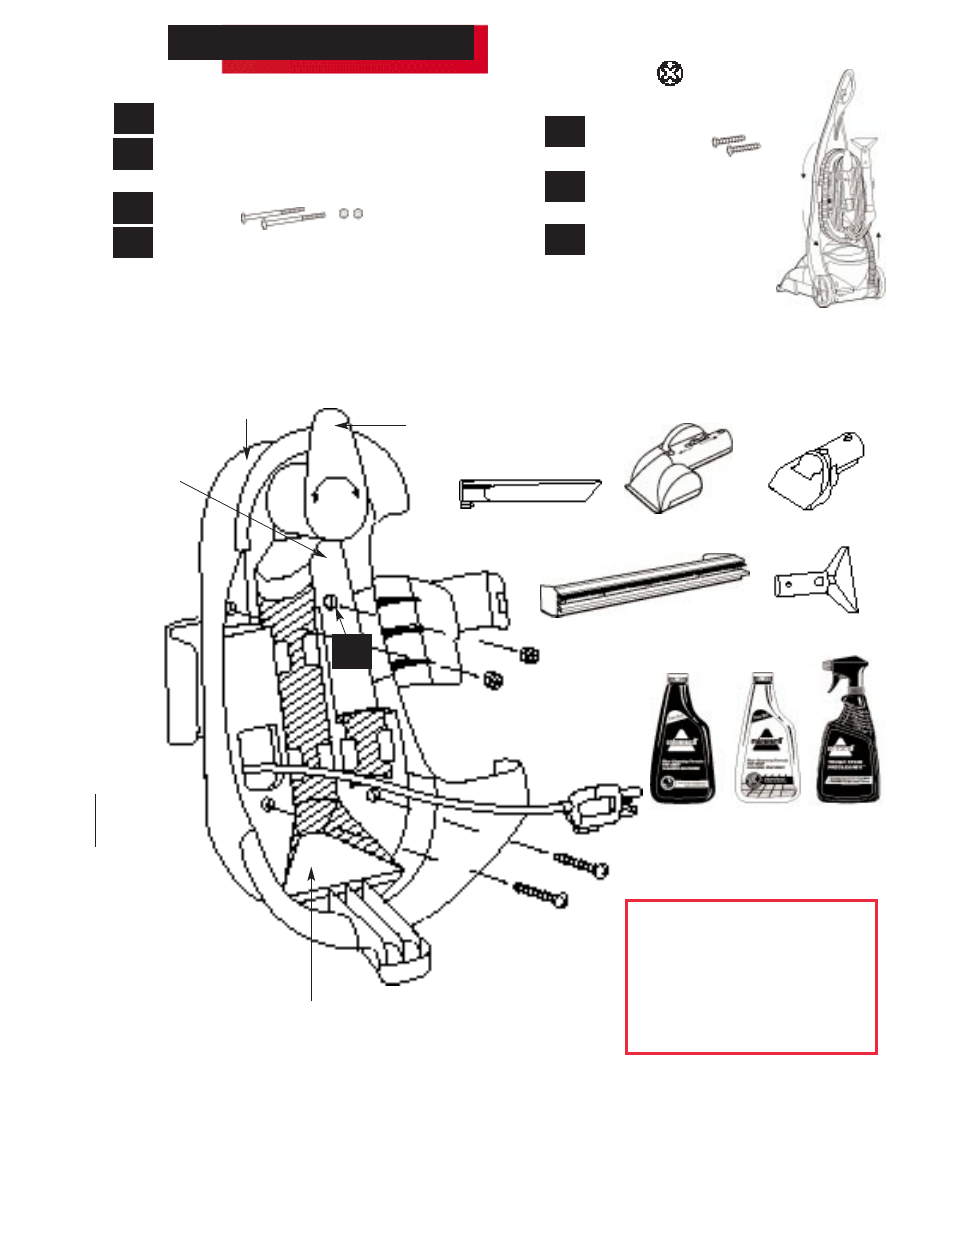 Vacuum Diagram And Parts List For Bissell Vacuumparts Model 5770